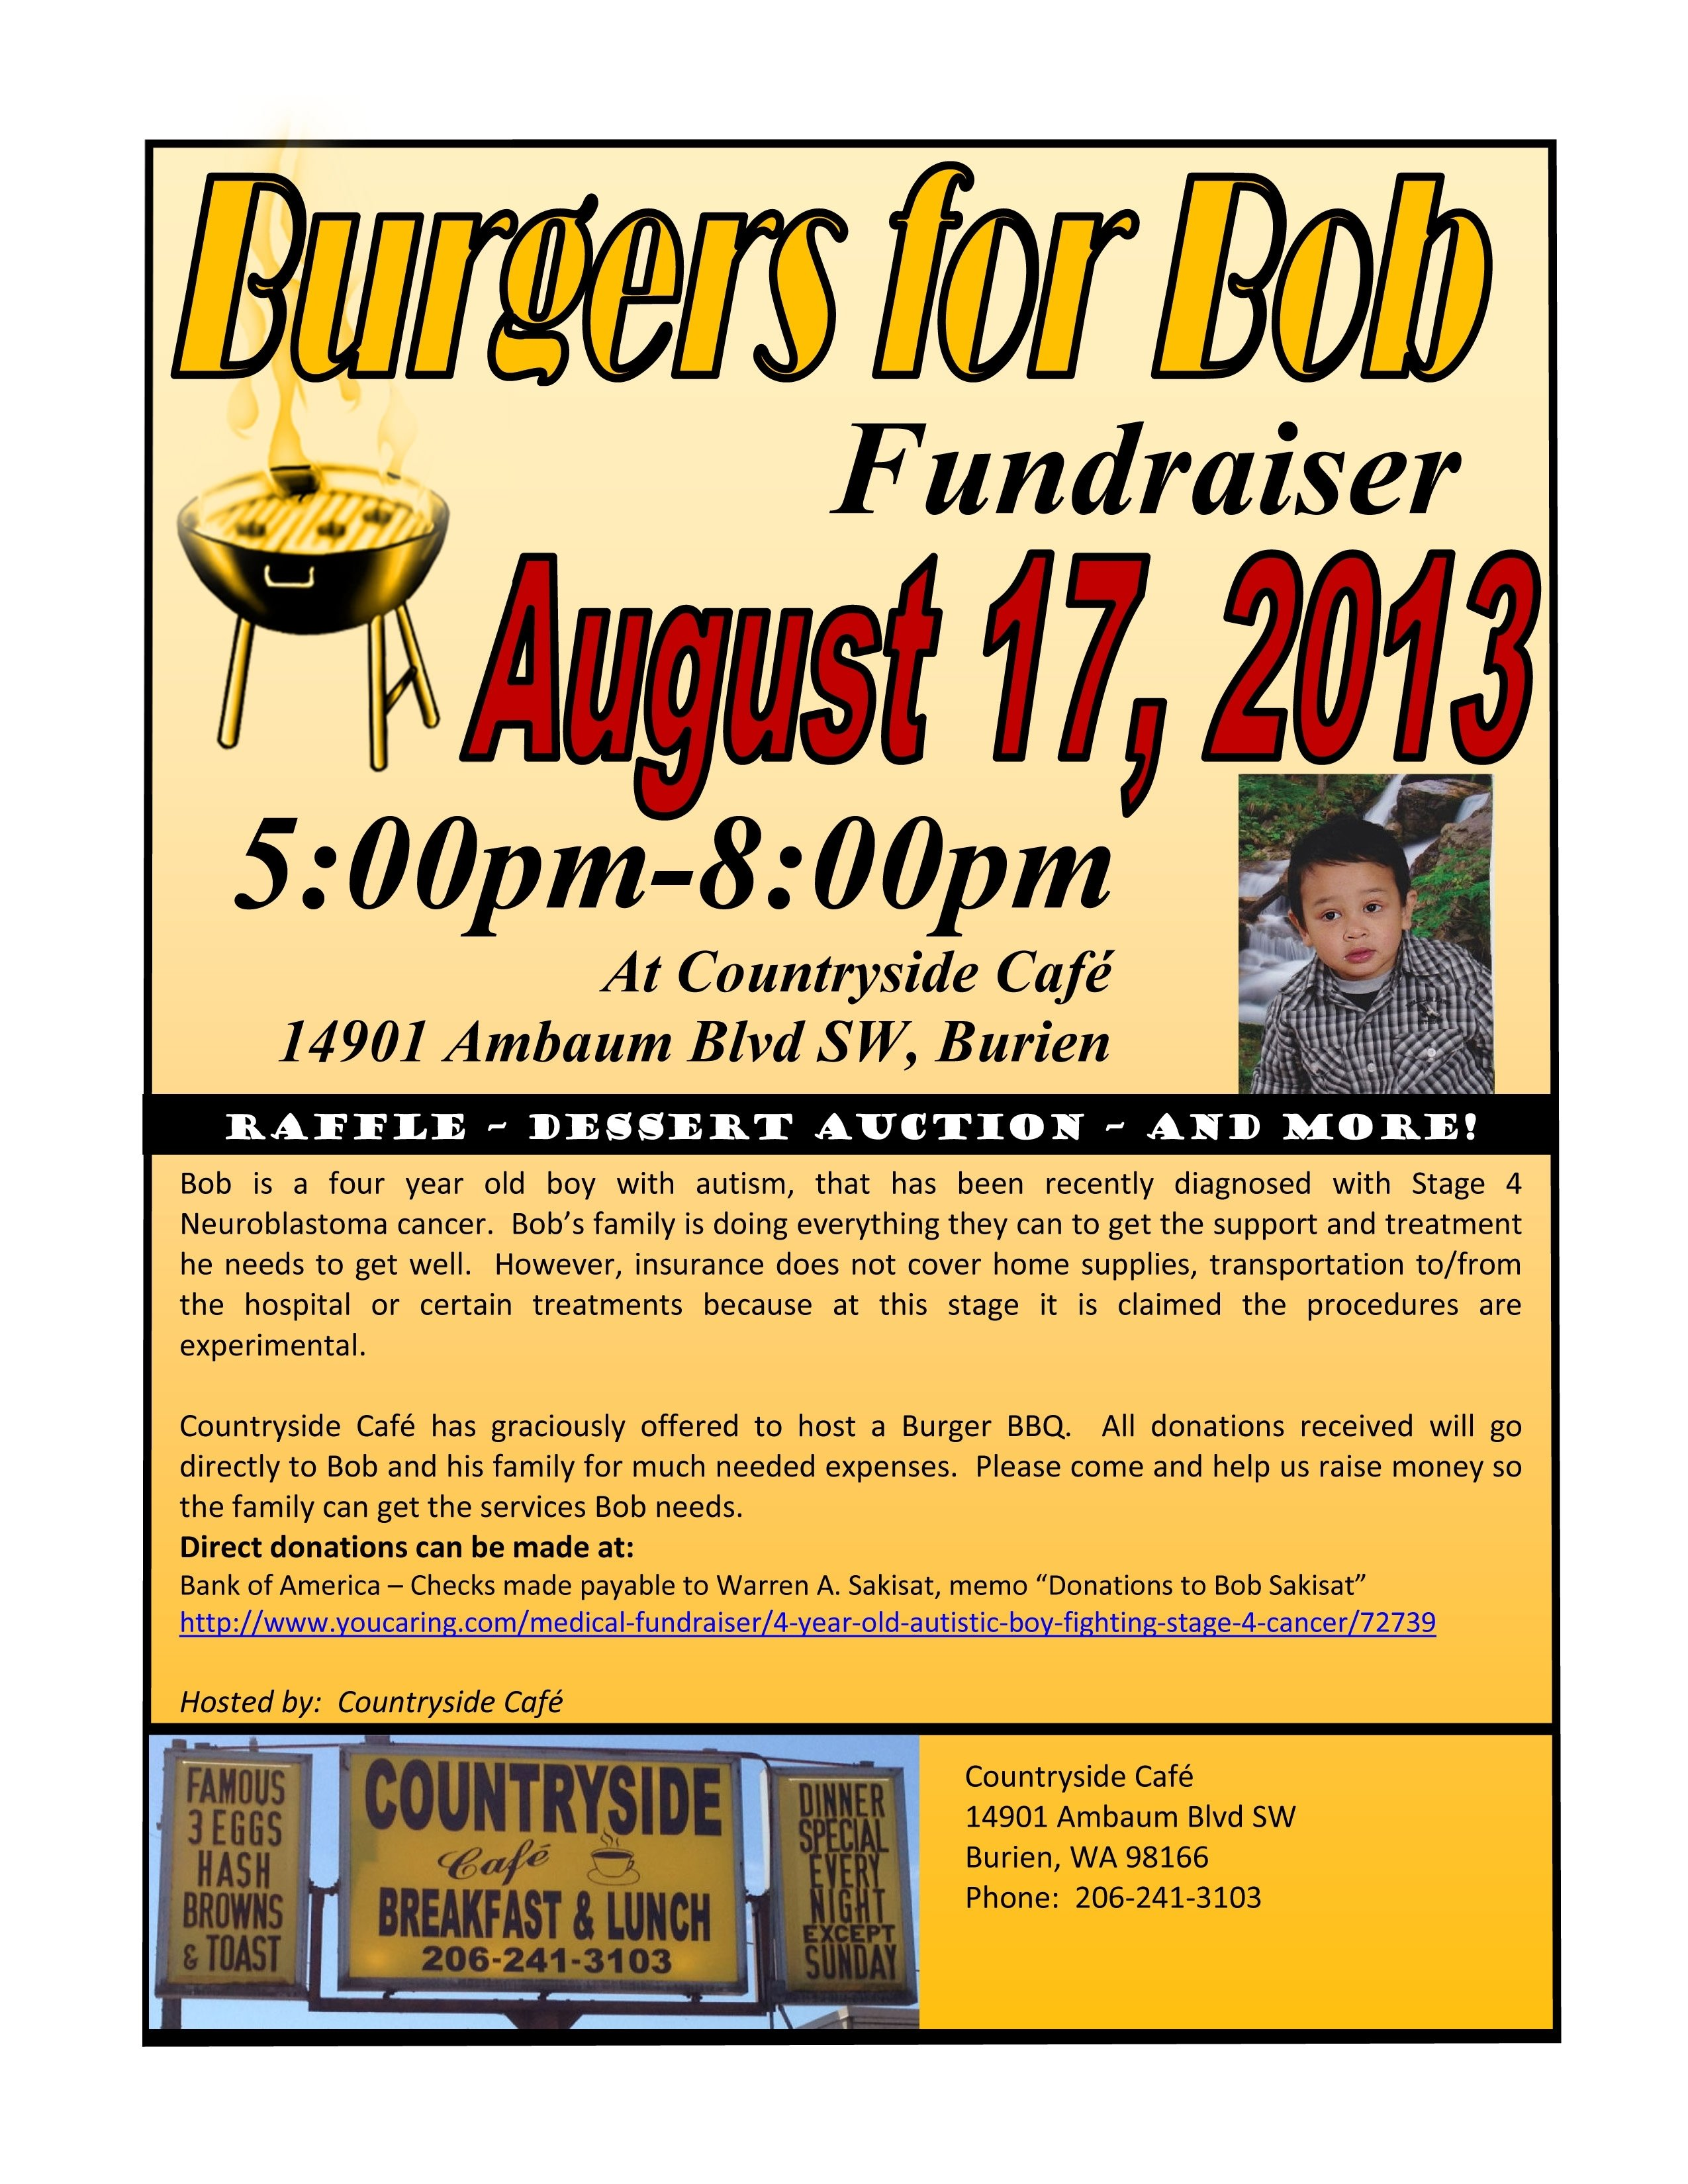 10 Attractive Fundraising Ideas For Medical Expenses reminder burgers for bob fundraiser will be this saturday aug 2020